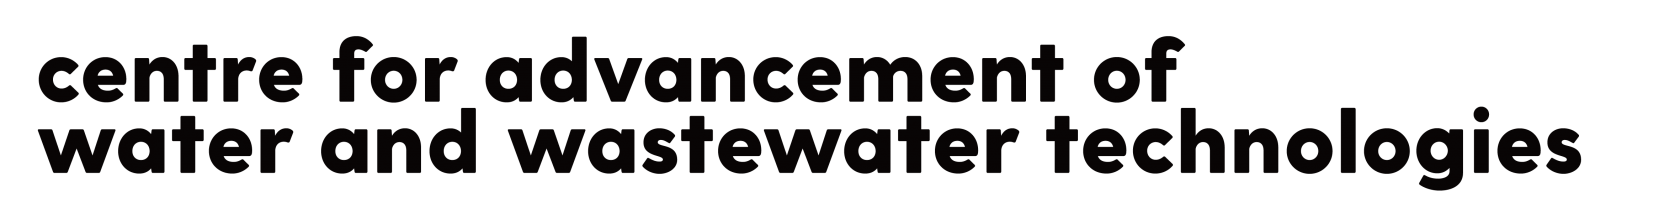 Centre for Advancement of Water and Wastewater Technologies CAWT full name logo